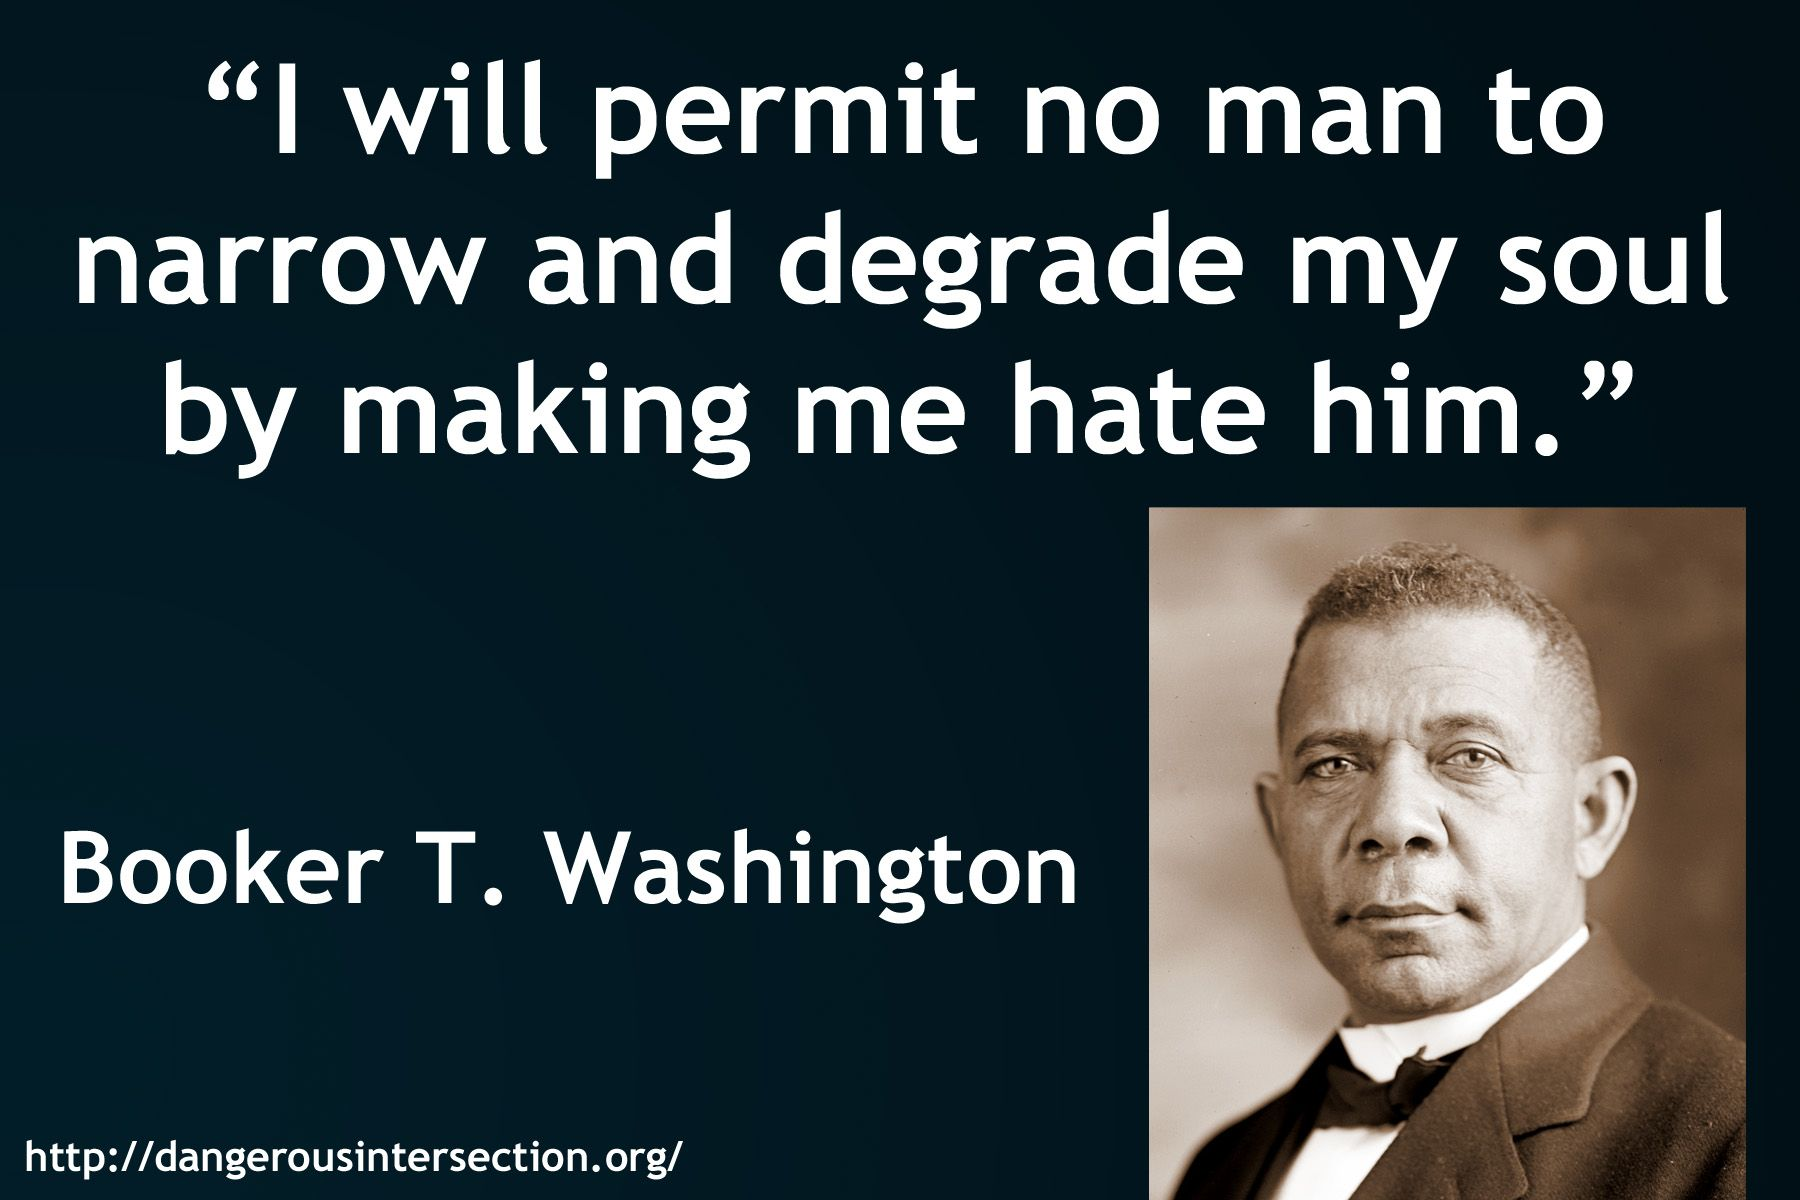 Booker T Washington Quotes Booker T. Washington Quotes | This quote by Booker T. Washington  Booker T Washington Quotes